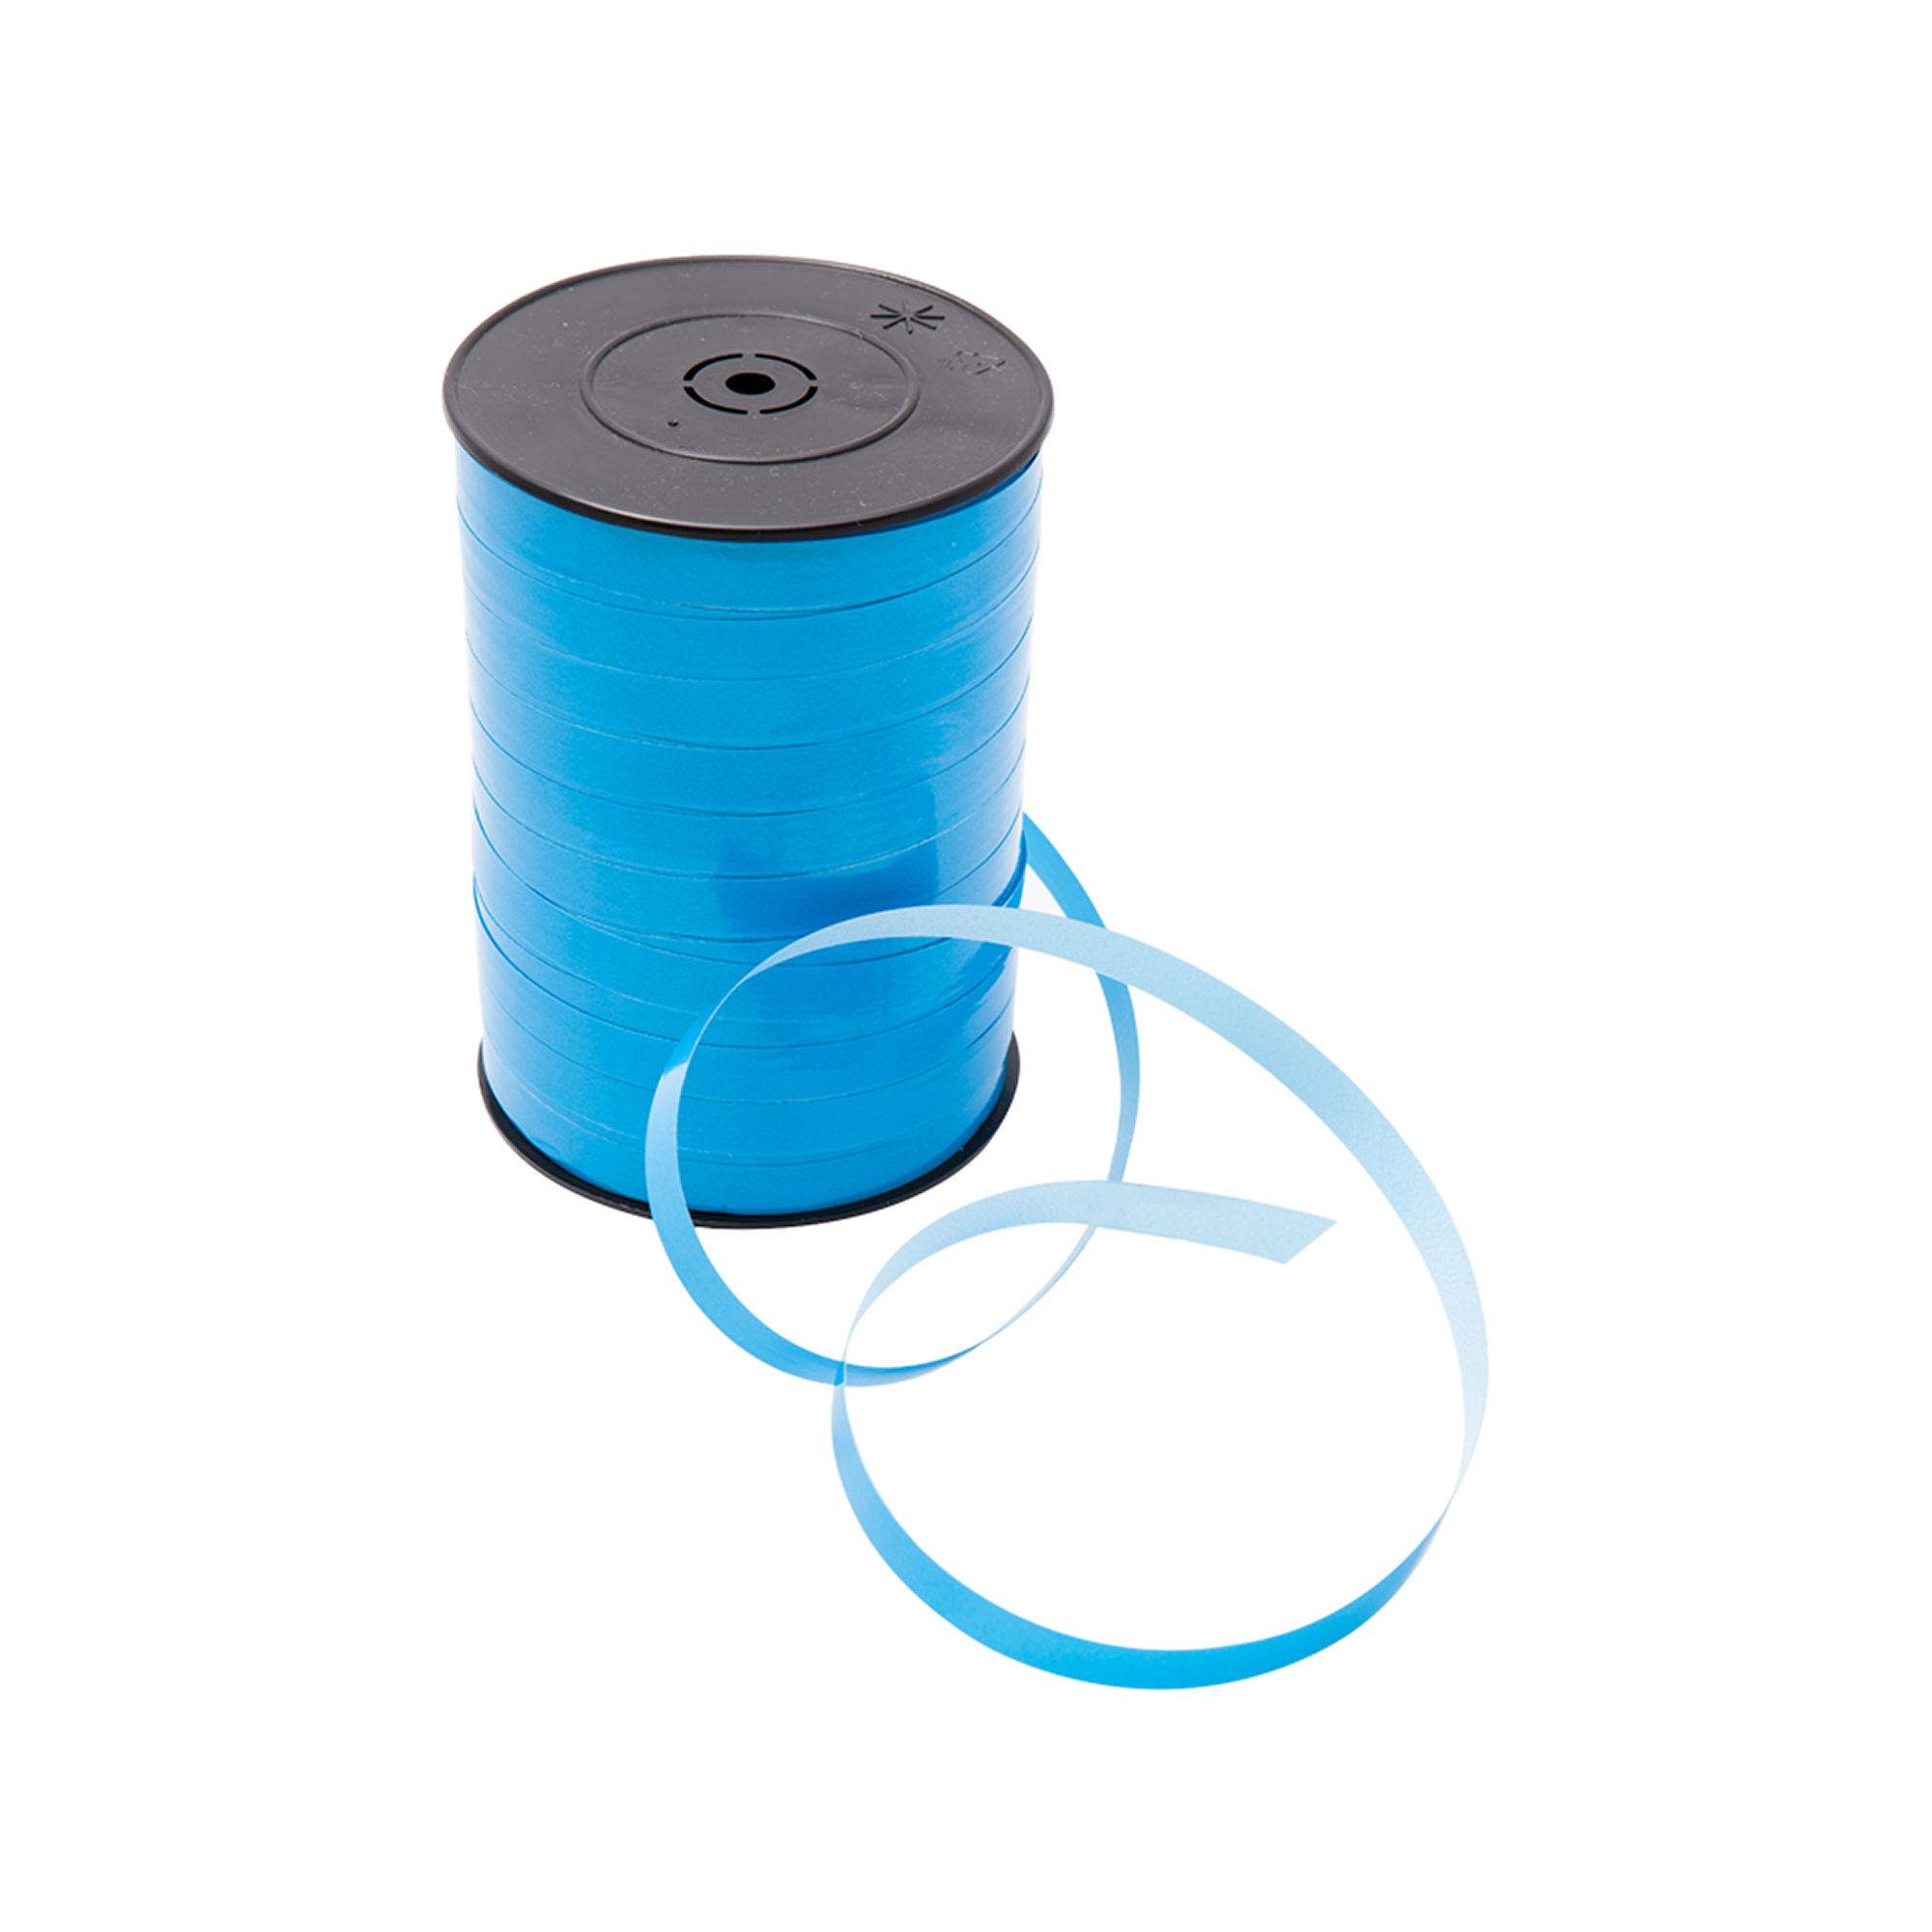 Shiny, blue ribbons to wrap around your gifts. 250 m/roll.